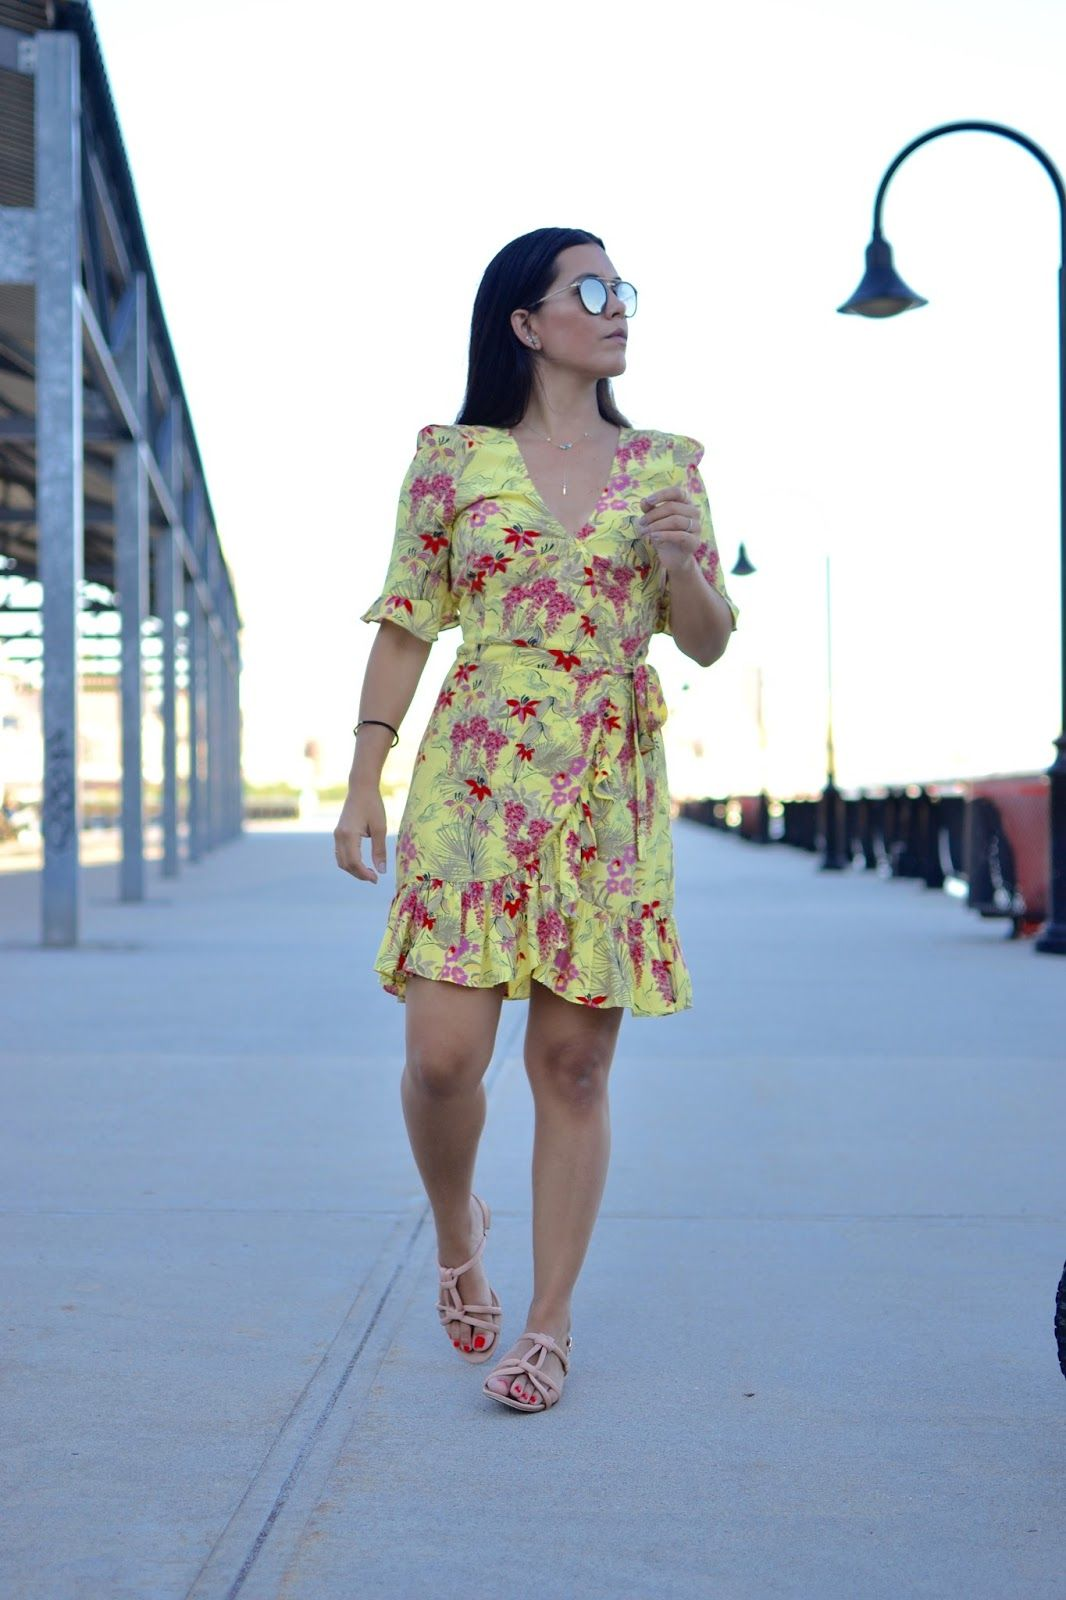 A Day In Hoboken Floral Dress Outfit Summer Summer Outfit Ideas Summer Wrap Dress Summer Dress Outfits Floral Dress Outfit Summer Floral Dress Outfits [ 1600 x 1066 Pixel ]